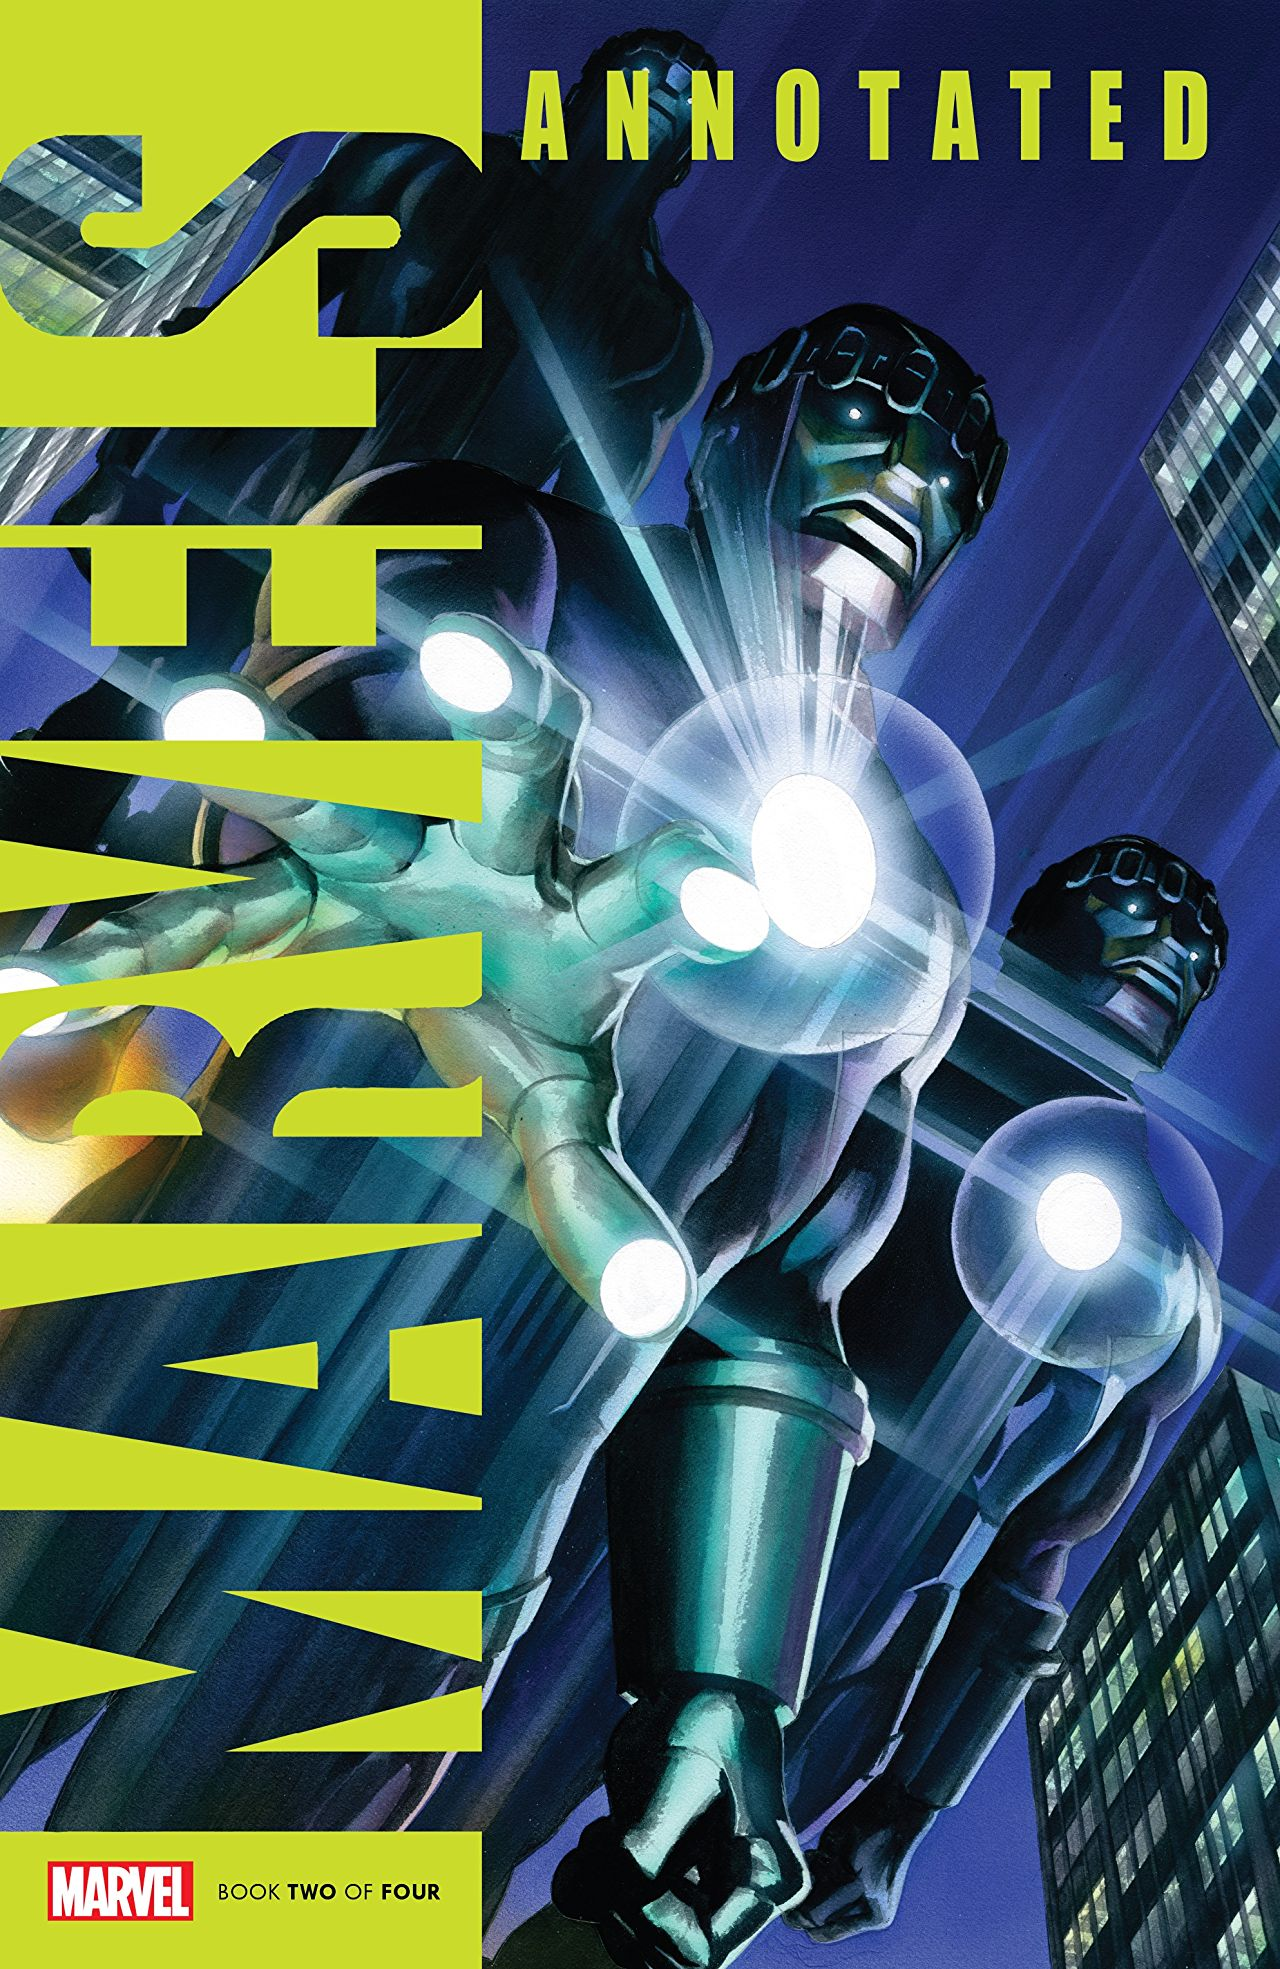 Alternate cover with Sentinels attacking.